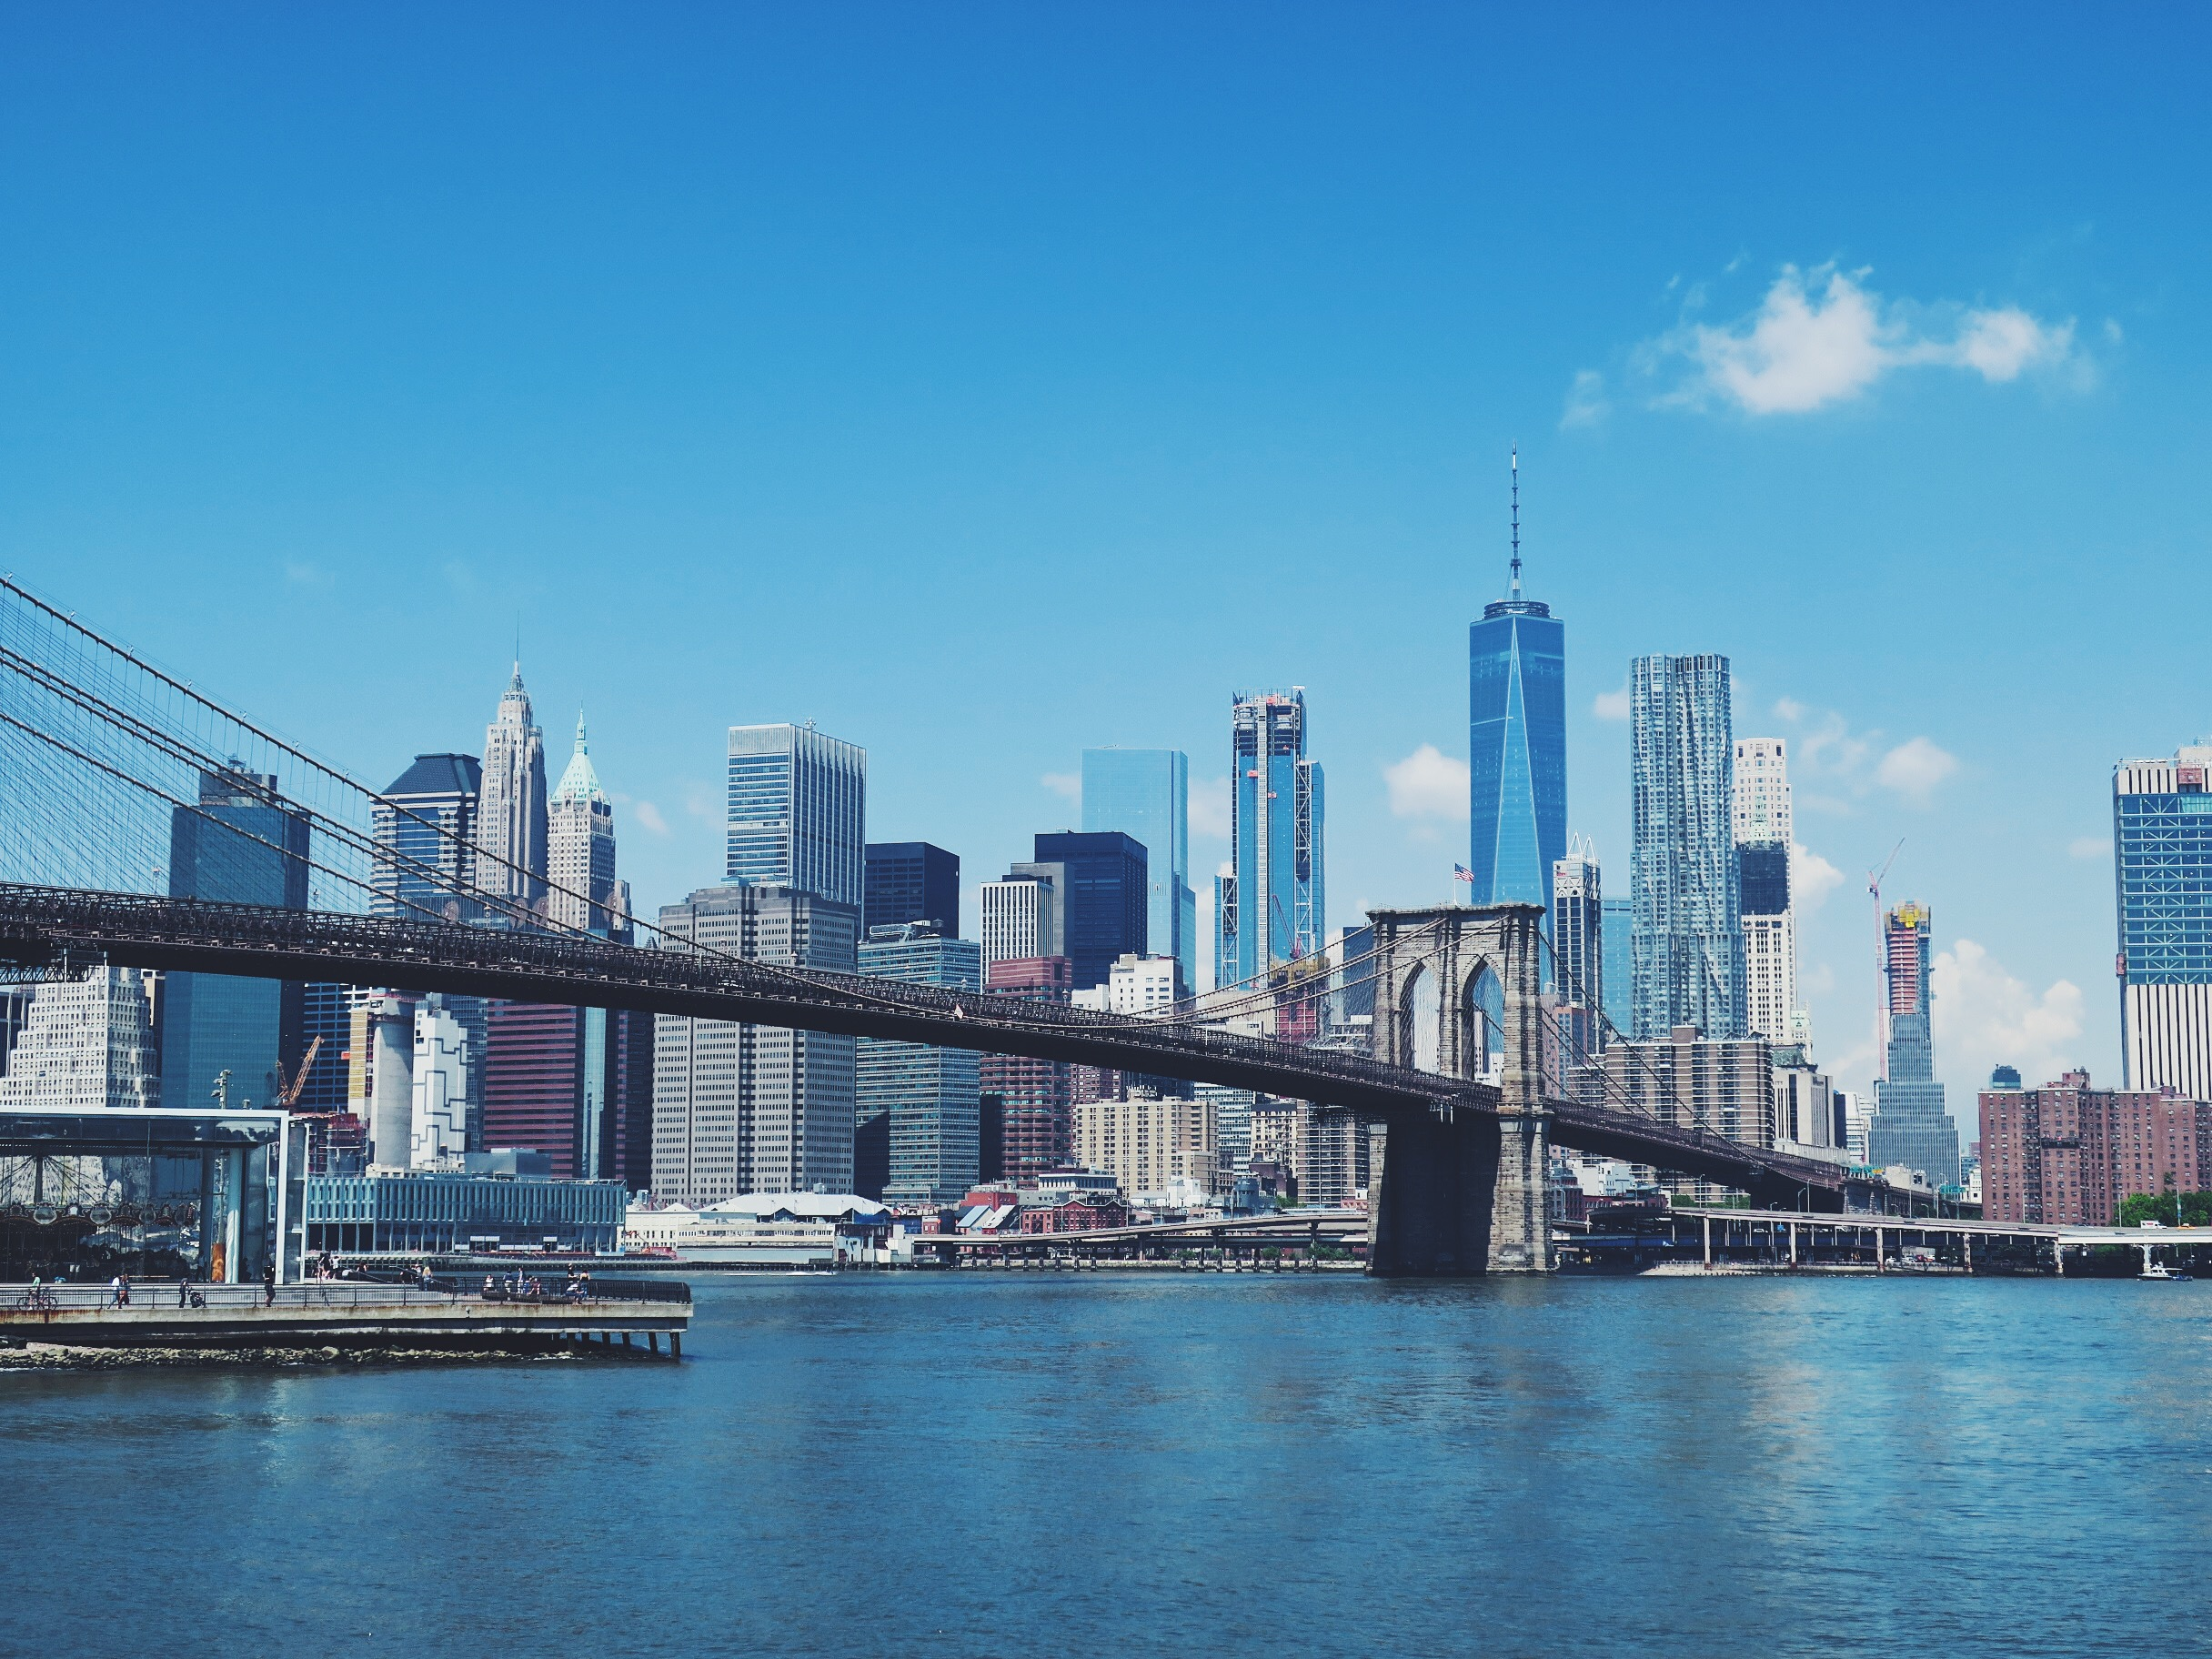 That legendary view on the Brooklyn Bridge and Manhattan (with in the left corner the picturesque Jane's Carousel)